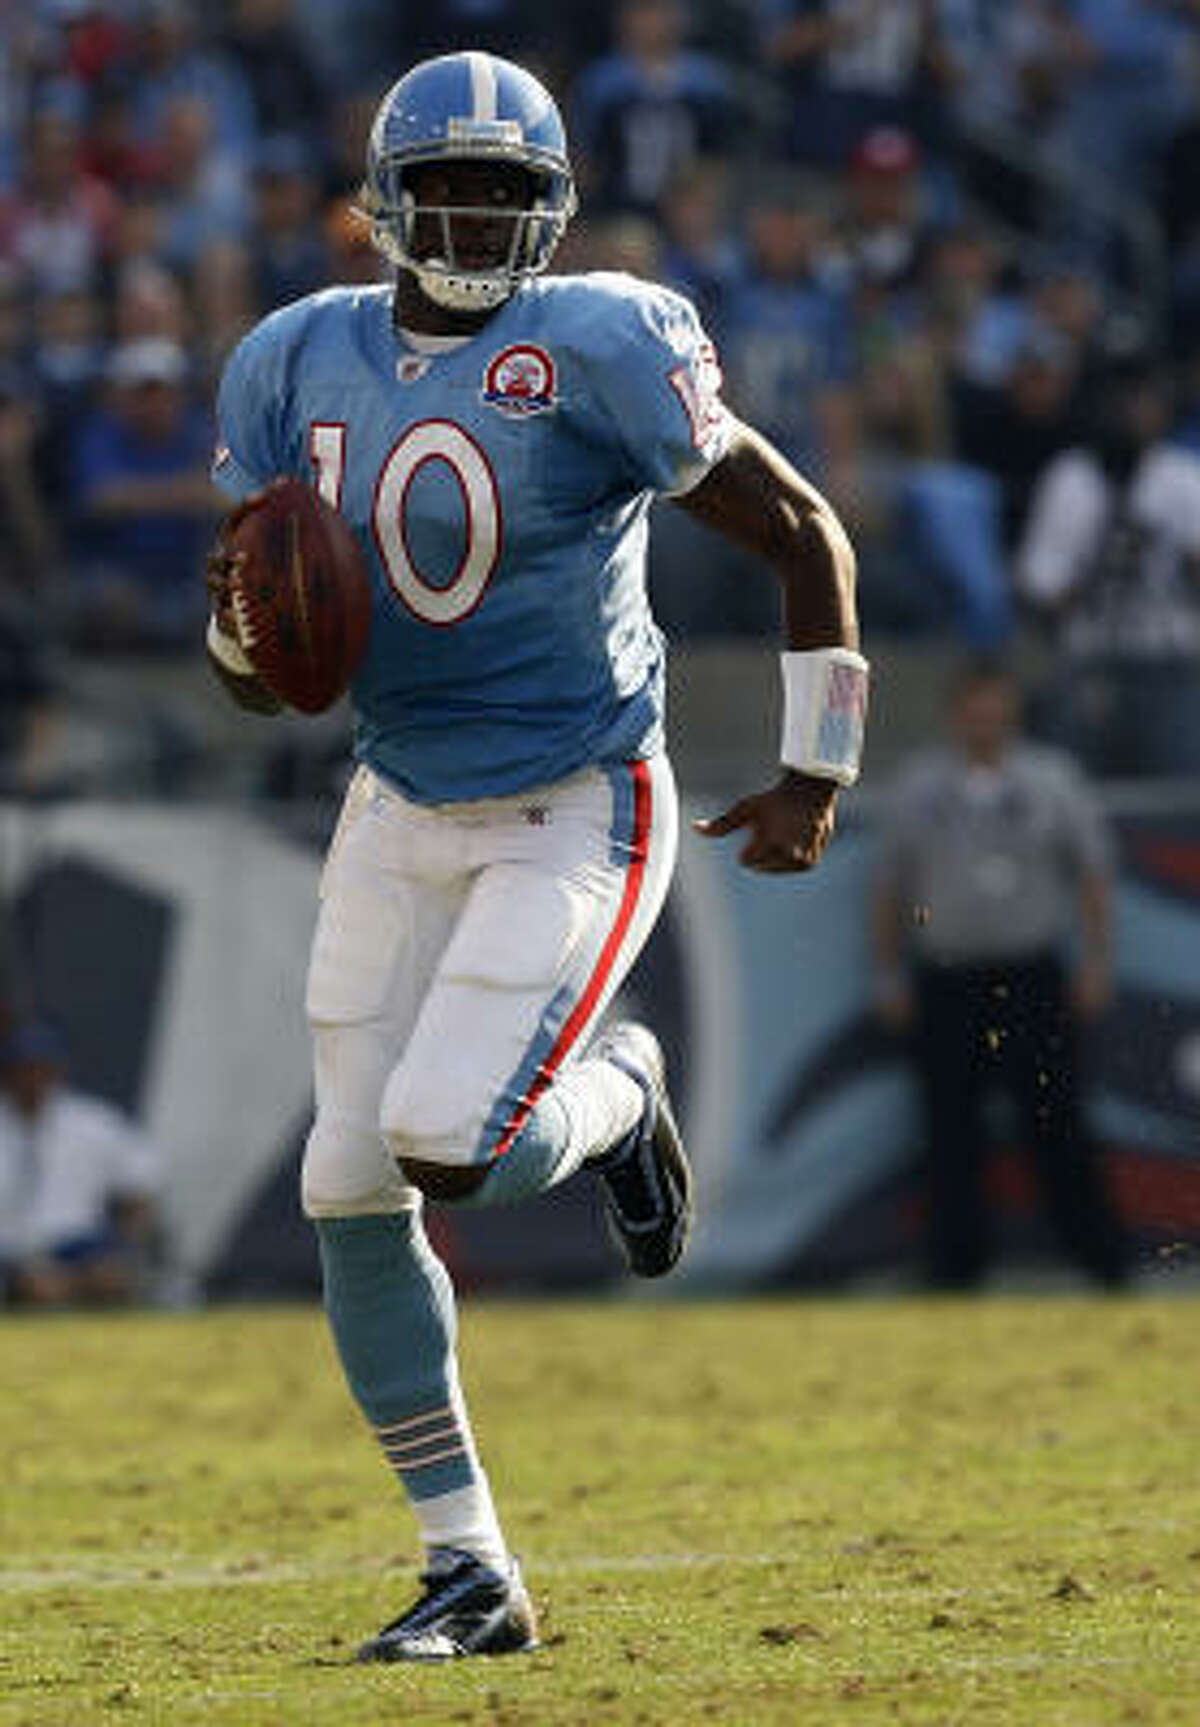 Nov. 15: Titans 41, Bills 17 Titans quarterback Vince Young threw for 210 yards and a touchdown.